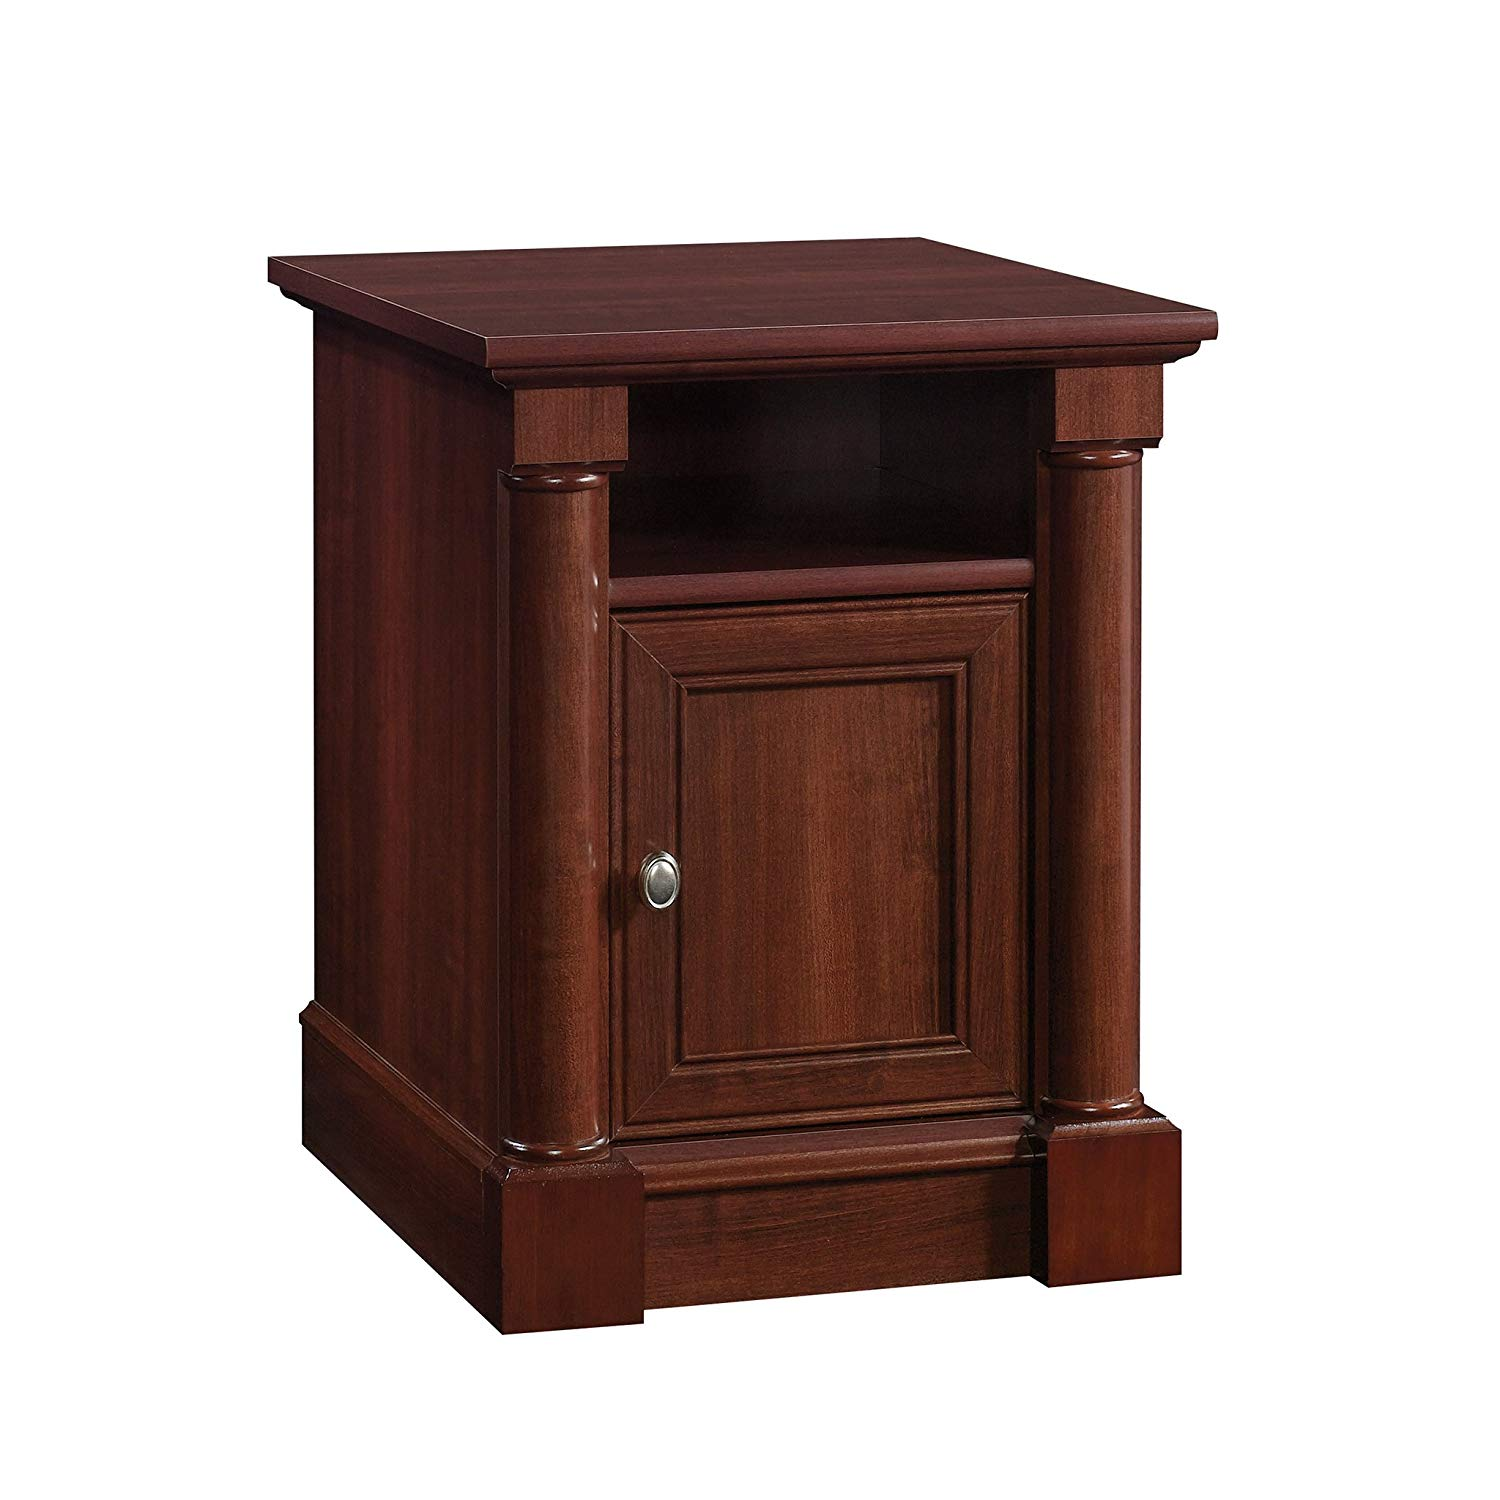 sauder palladia side table select cherry finish end what color throw pillows for brown couch canton akron small indoor dog kennels furniture row rugs can you paint laminate slim